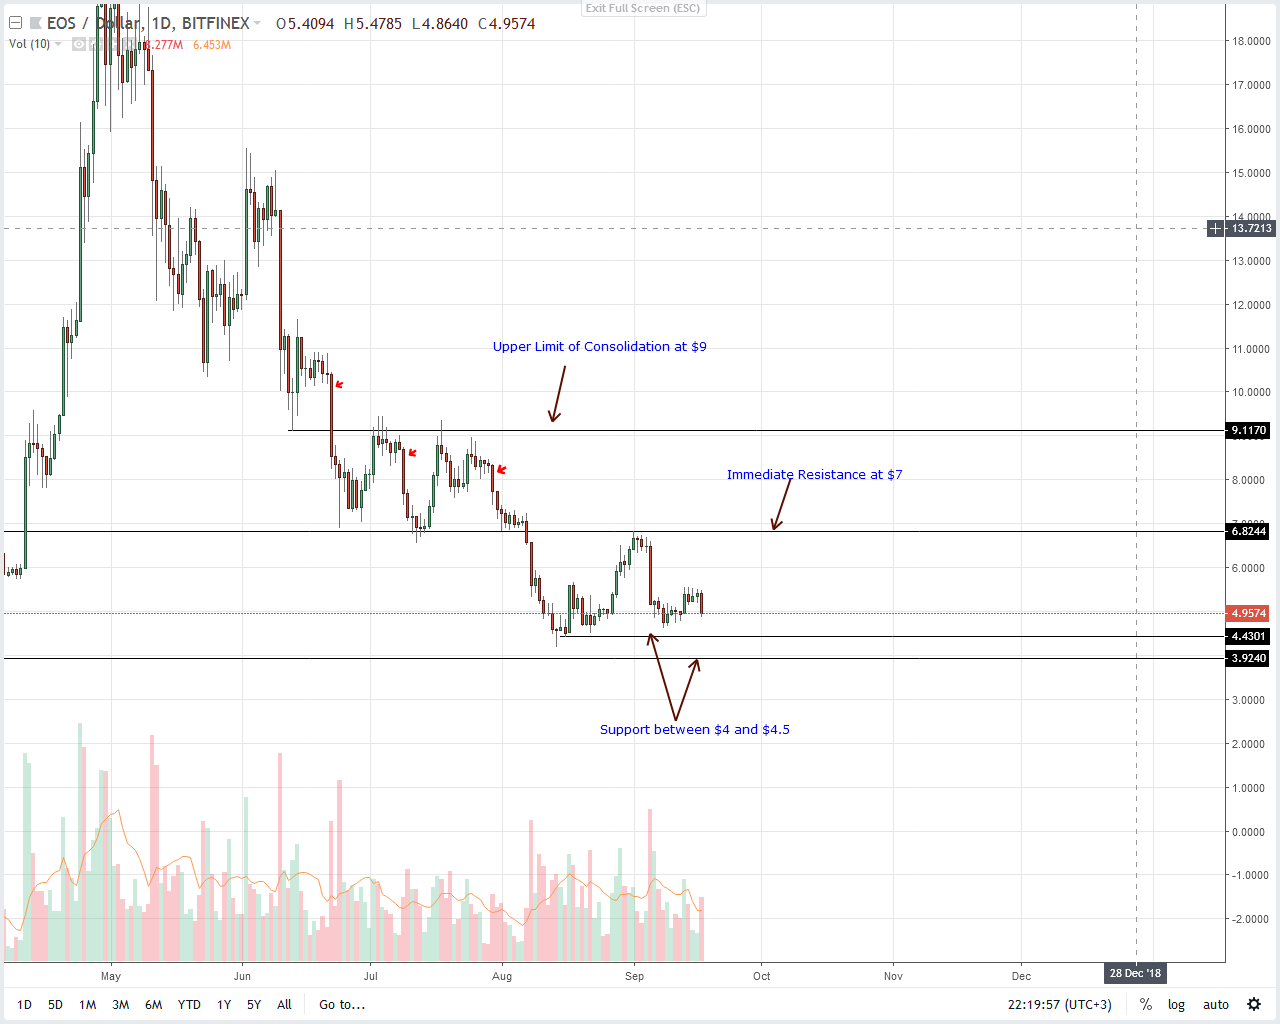 EOS Daily Chart Sep 18